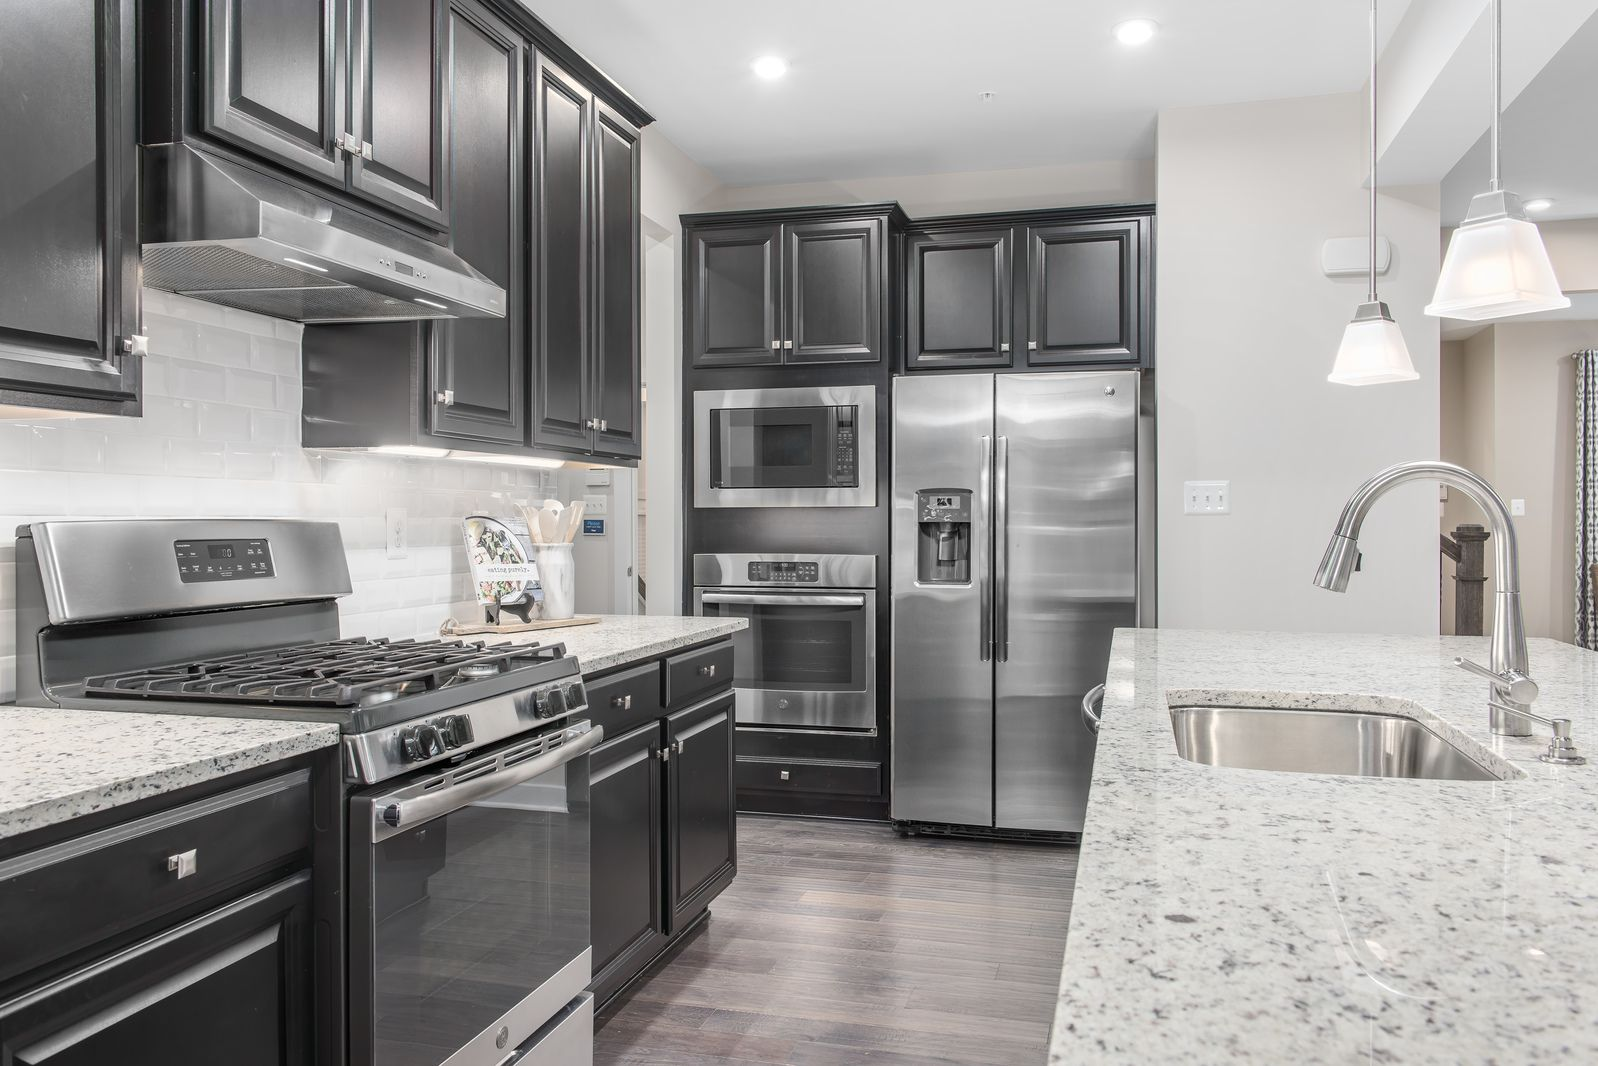 Kitchen featured in the Hudson By Ryan Homes in York, PA